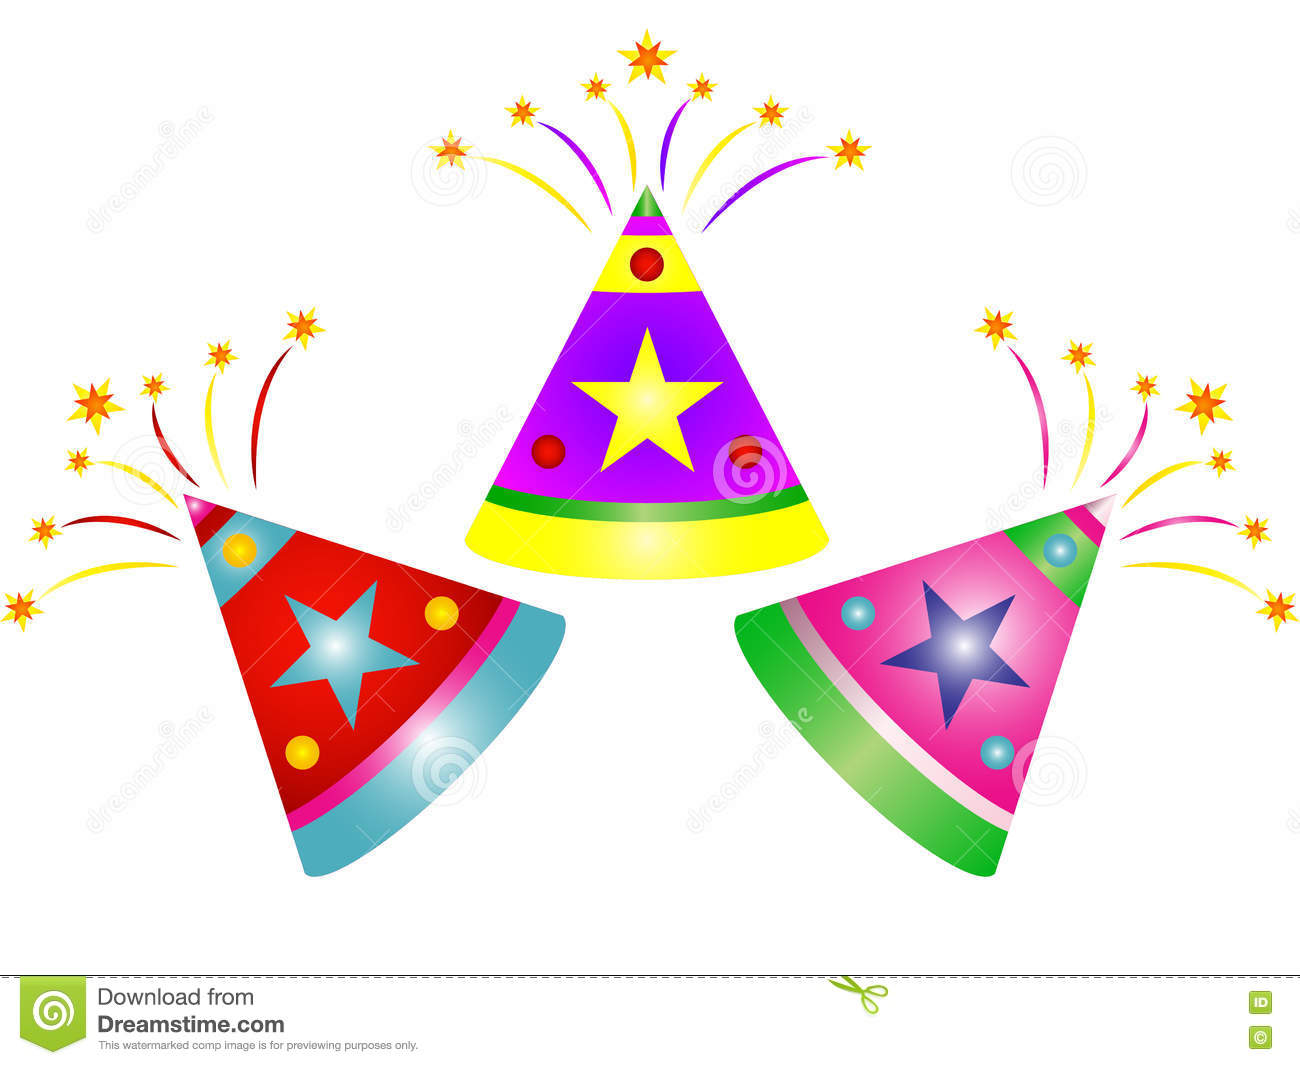 Diwali crackers clipart png » Clipart Station.